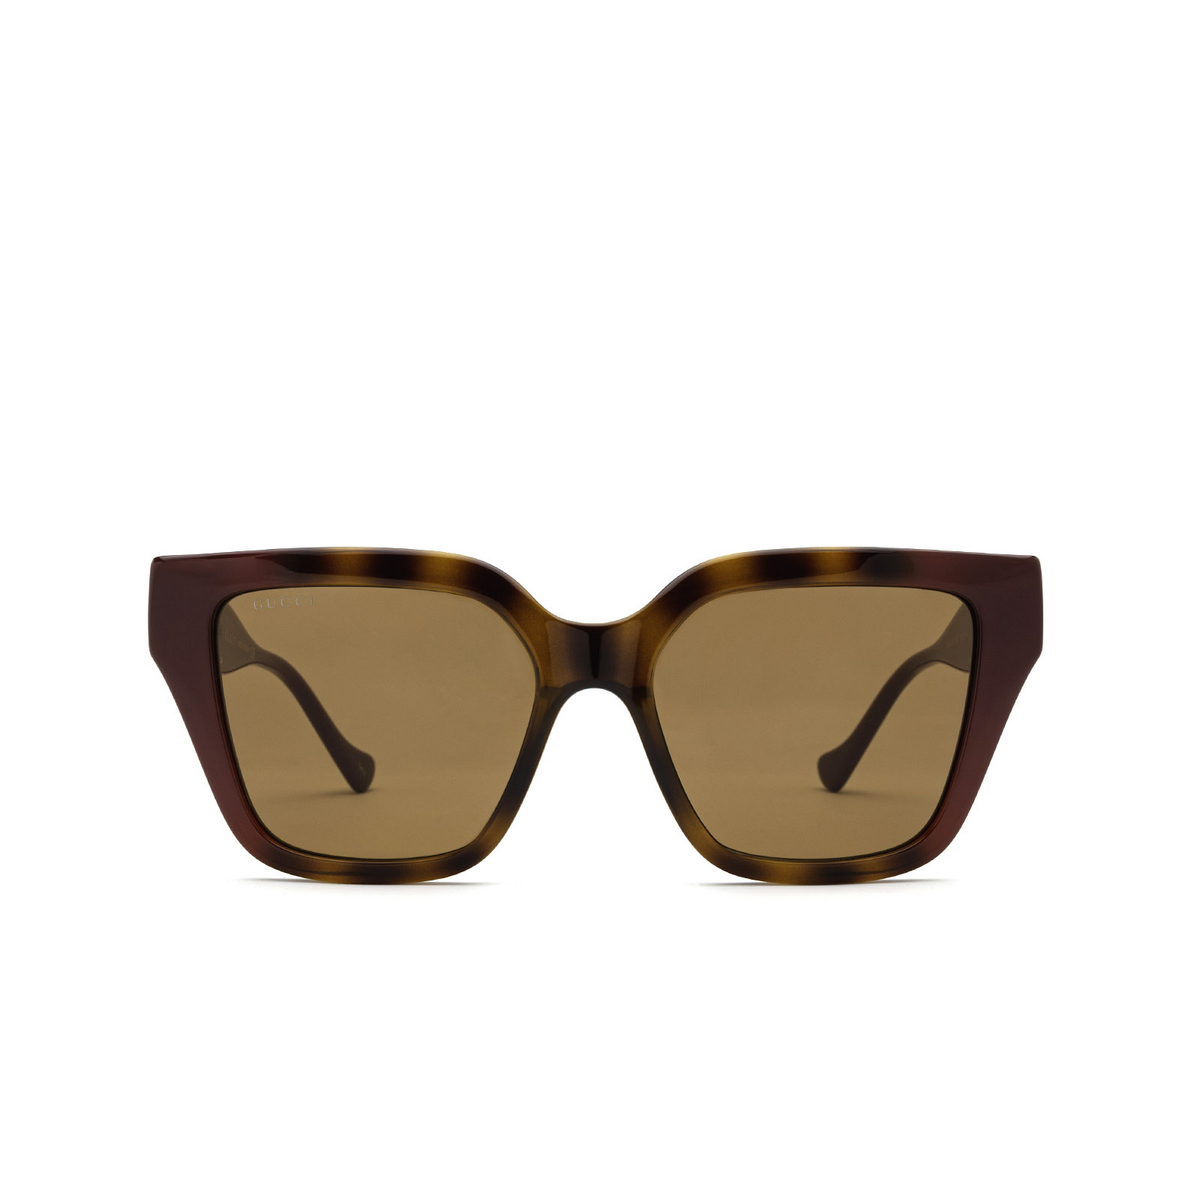 Gucci® Cat-eye Sunglasses: GG1023S color Havana & Burgundy 003 - front view.